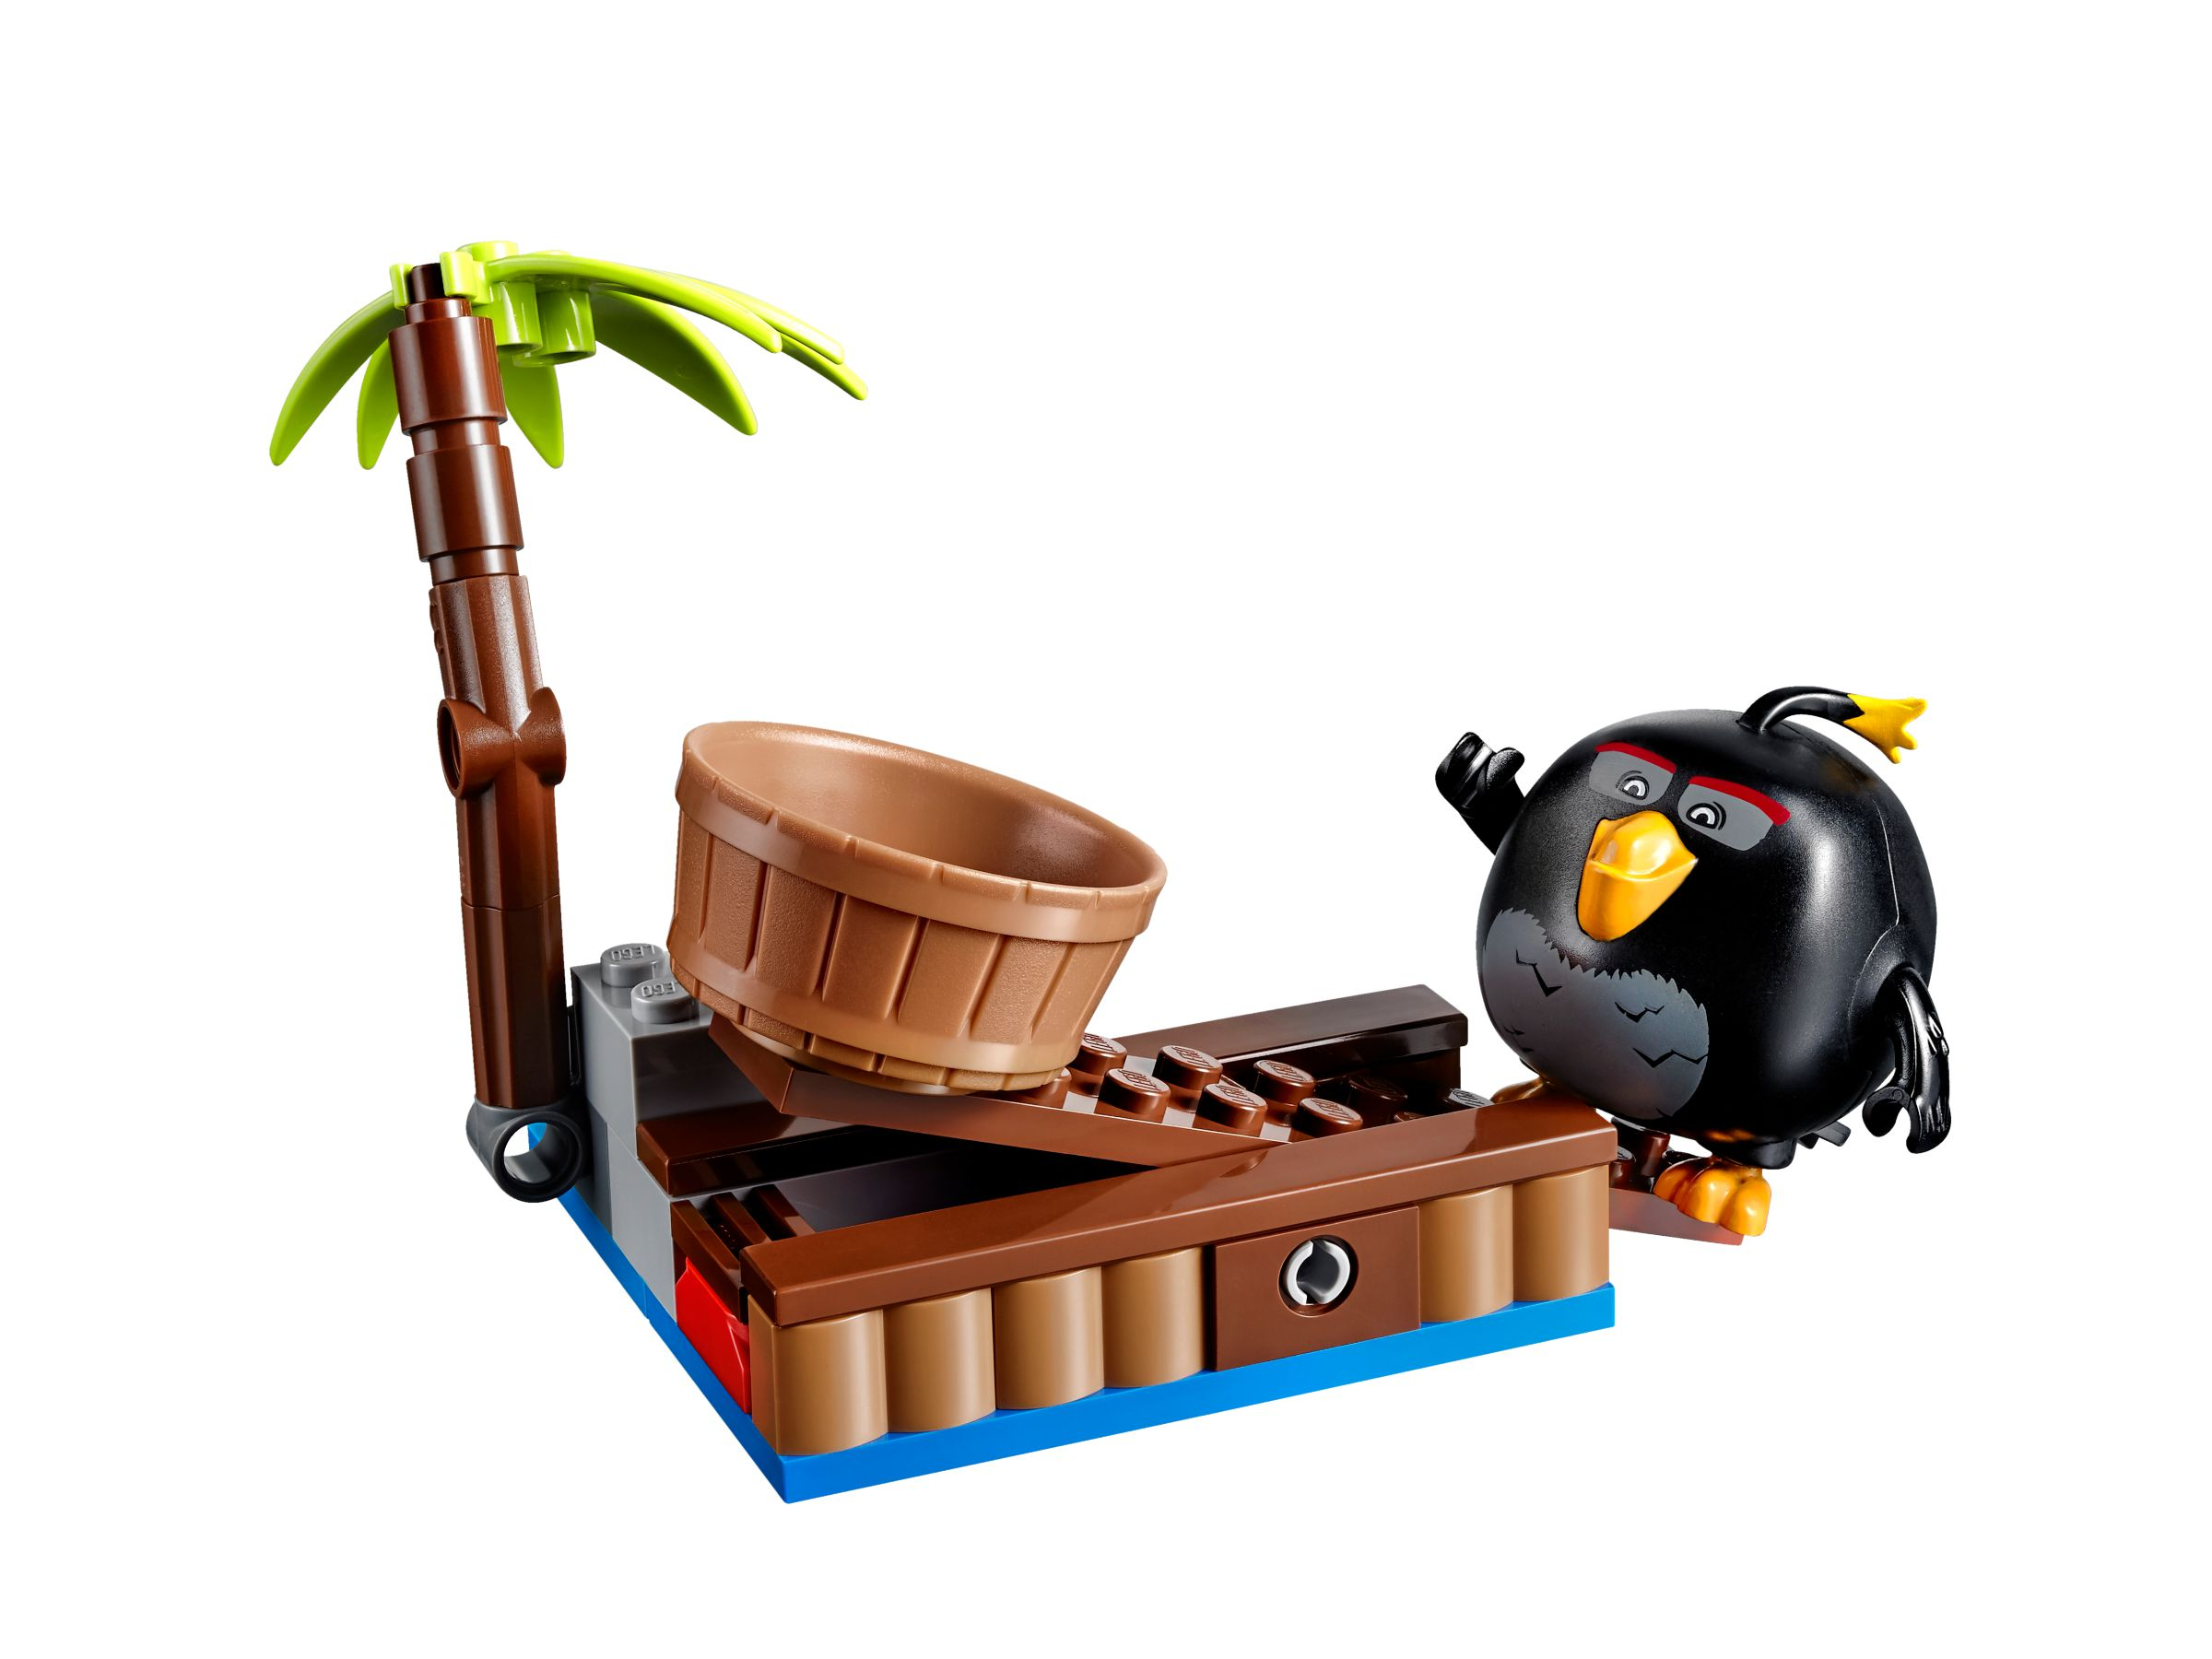 LEGO Angry Birds 75825 Piggy Pirate Ship LEGO_75825_alt7.jpg